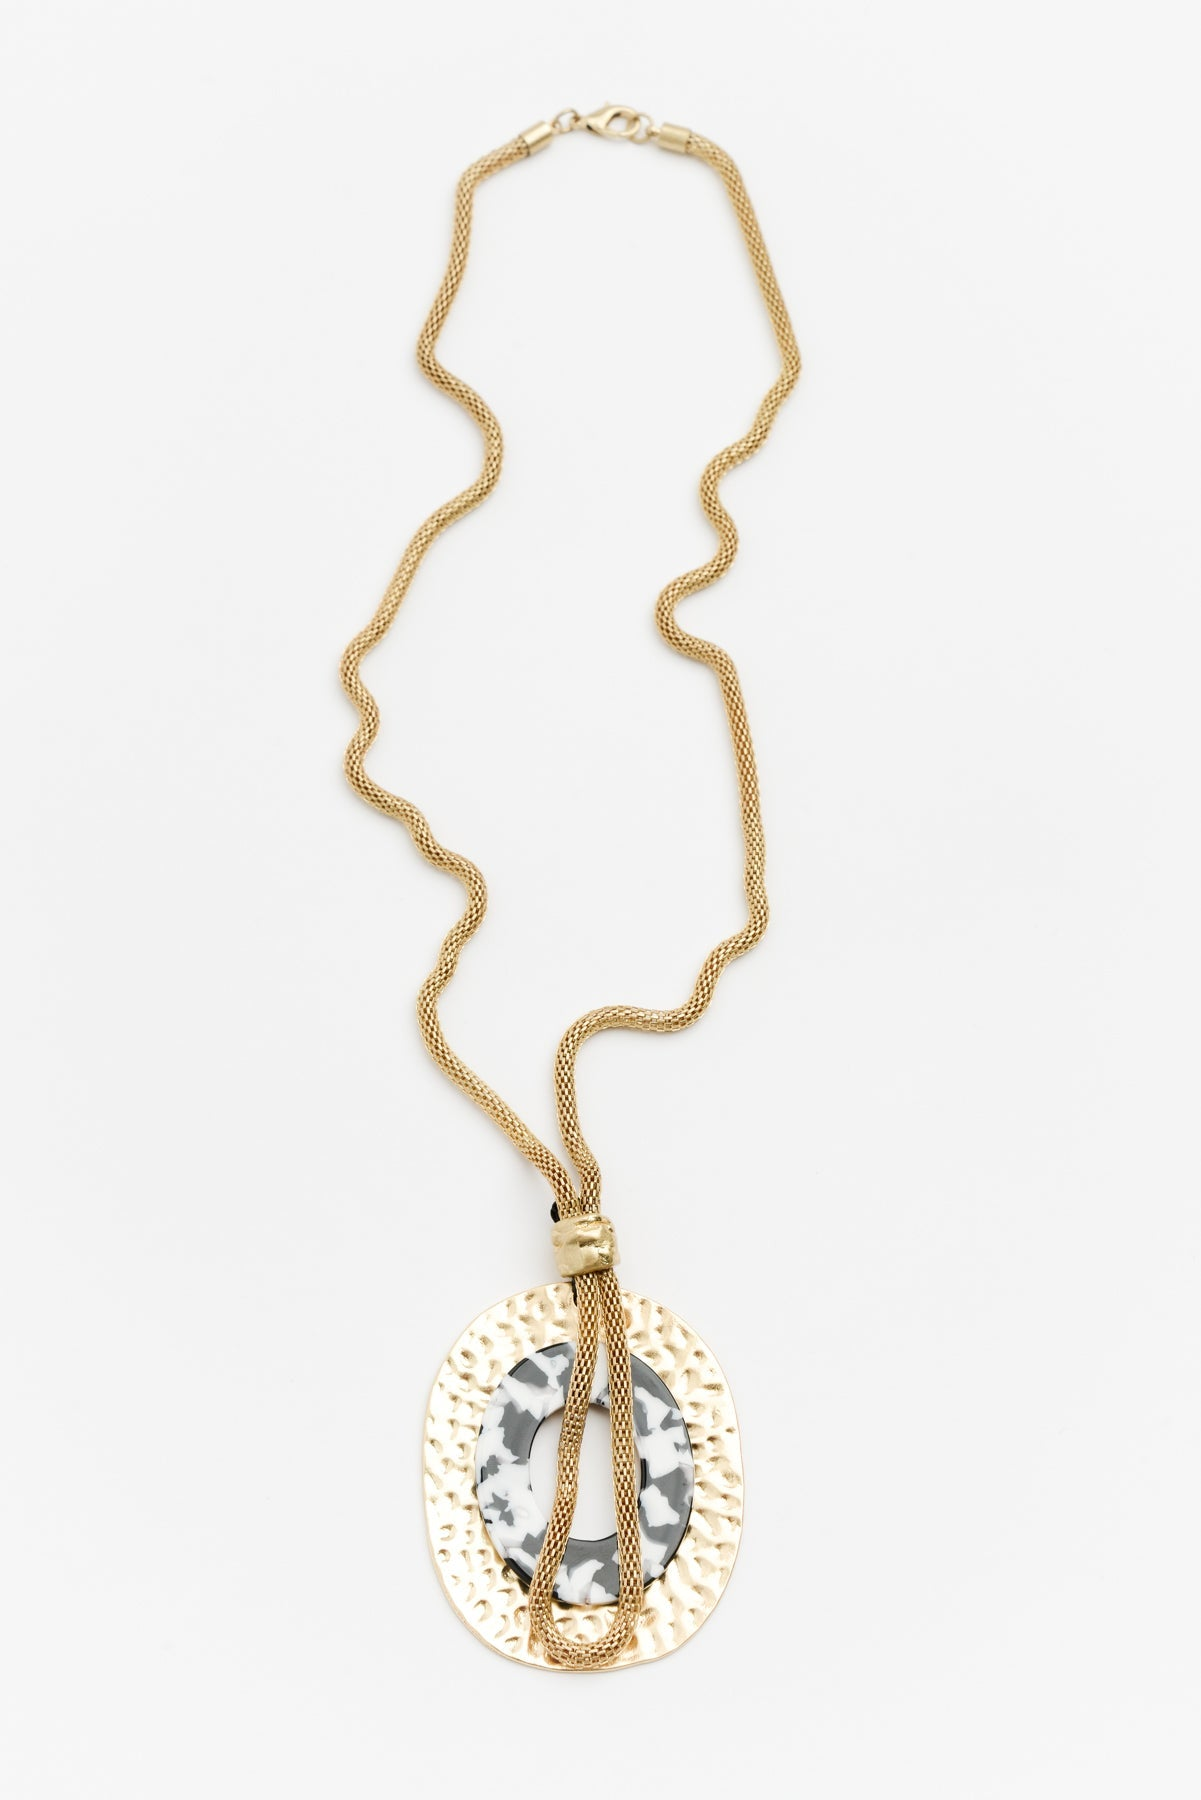 Kimberley Gold Resin Necklace - Adorne - Blue Bungalow Online